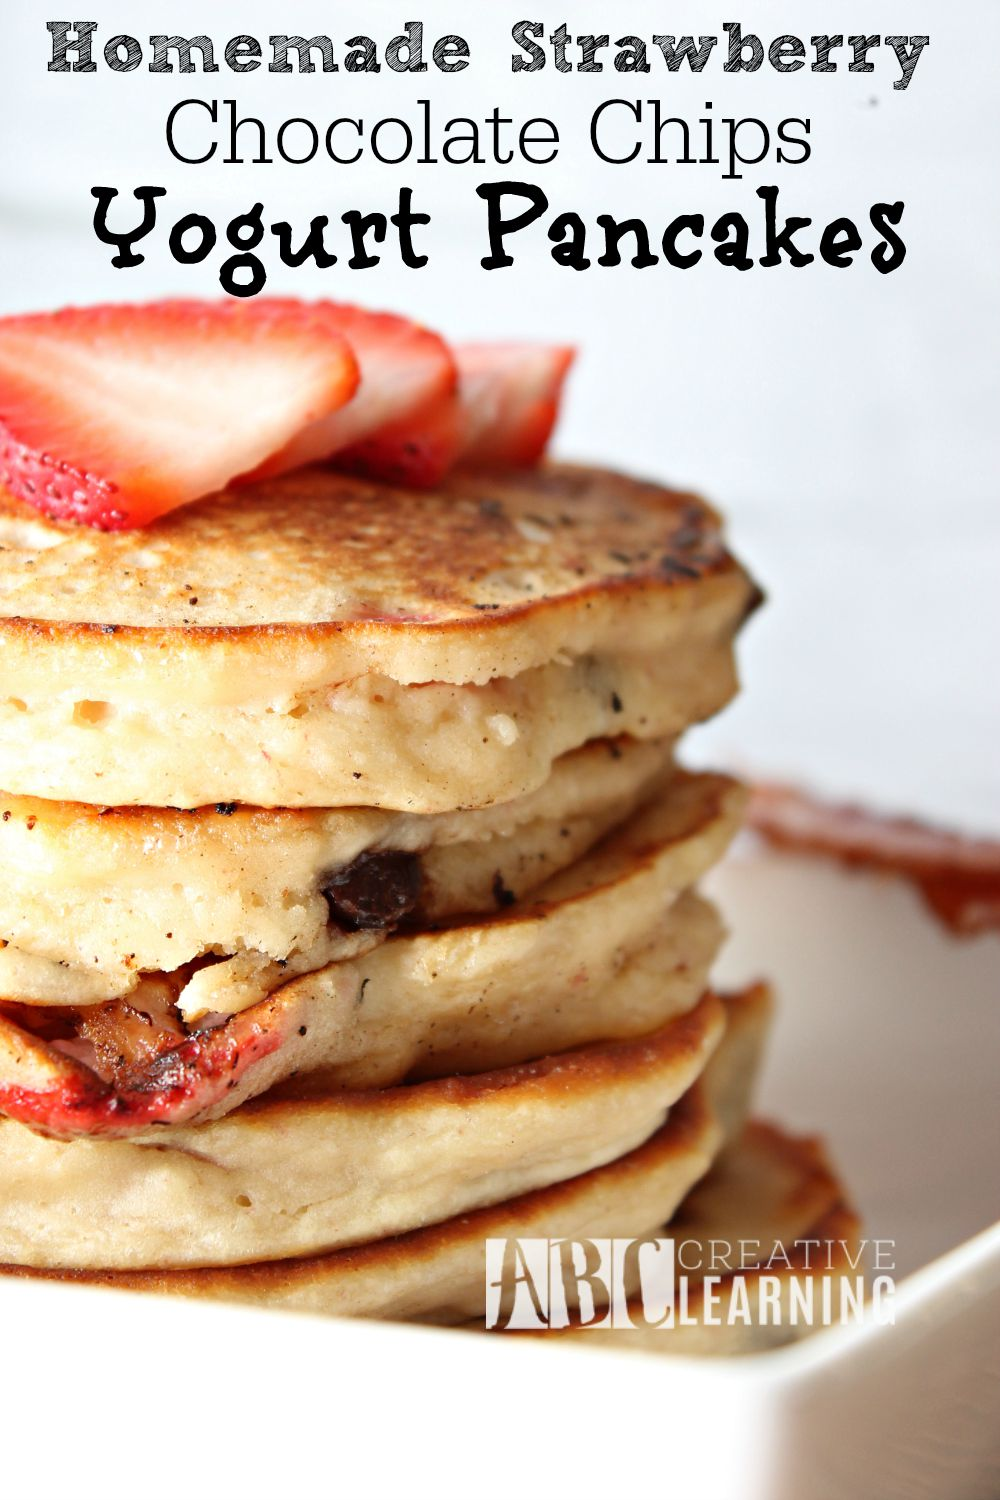 Homemade Strawberry Chocolate Chips Yogurt Pancakes